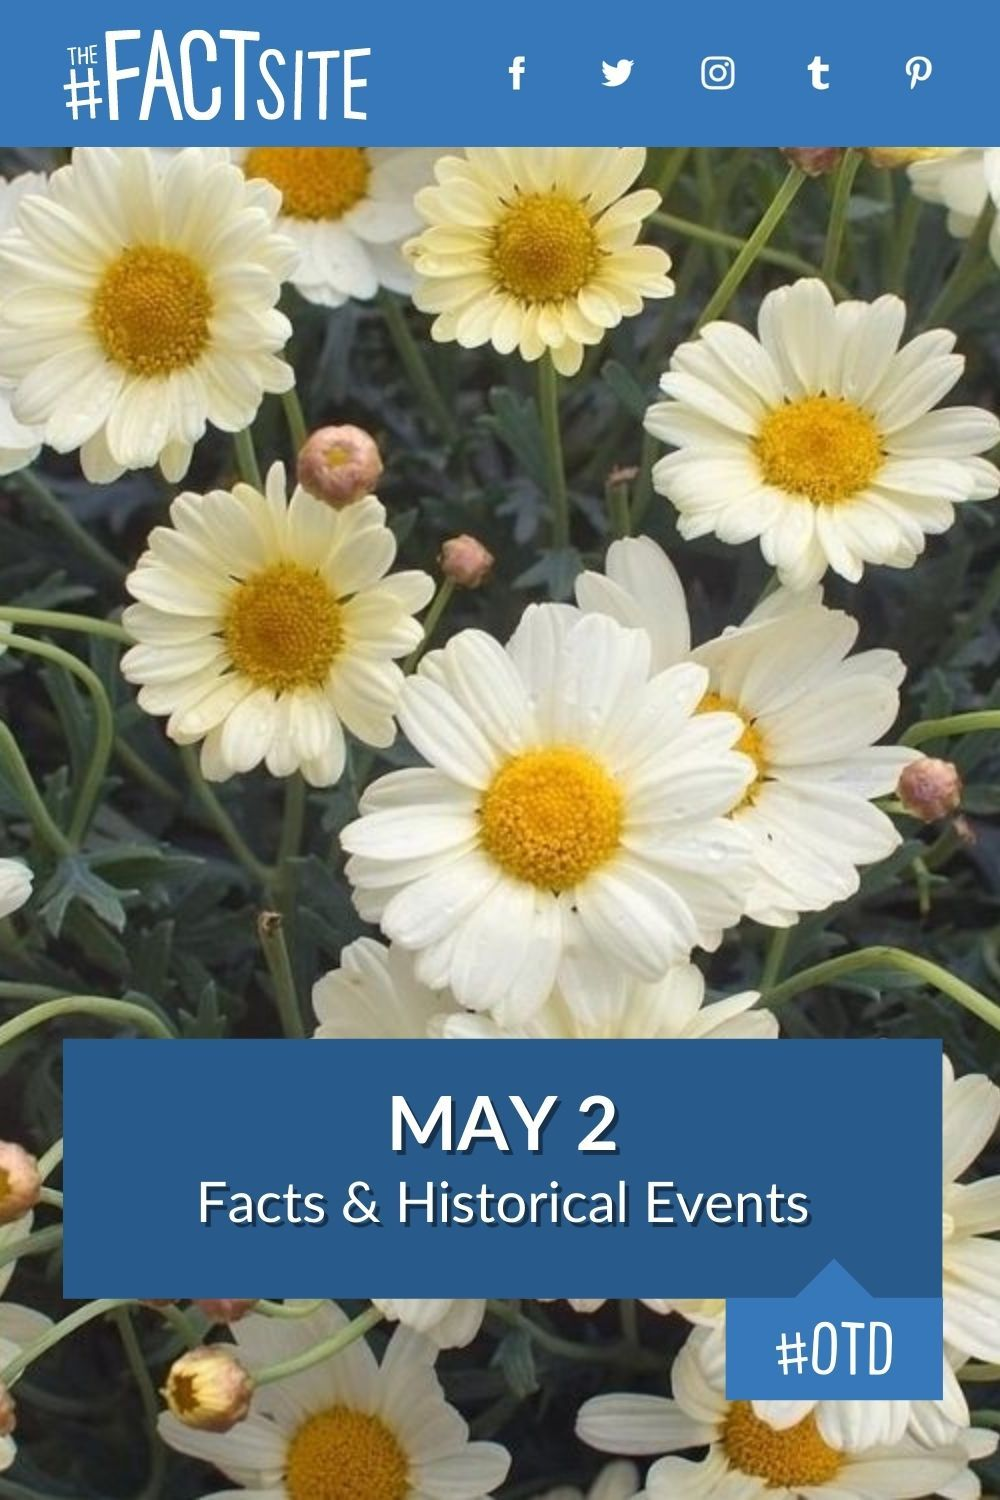 Facts & Historic Events That Happened on May 2